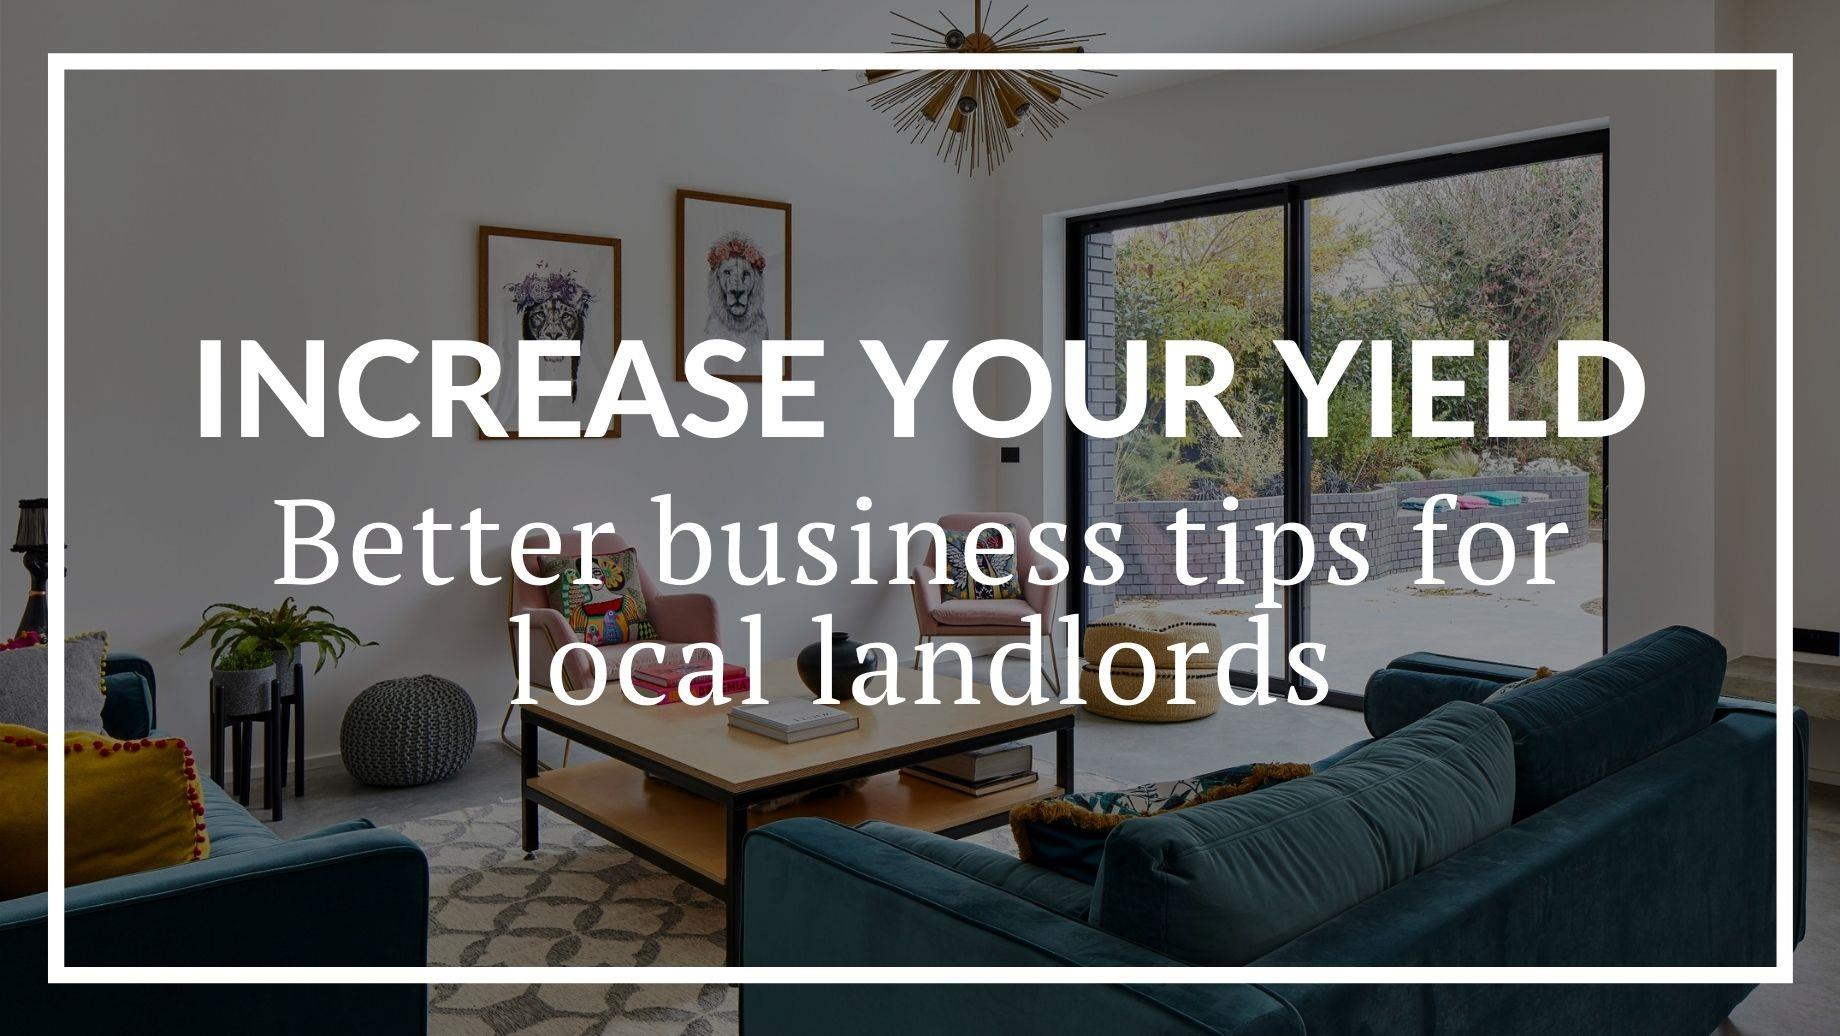 INCREASE YOUR YIELD: BETTER BUSINESS TIPS FOR LOCAL LANDLORDS